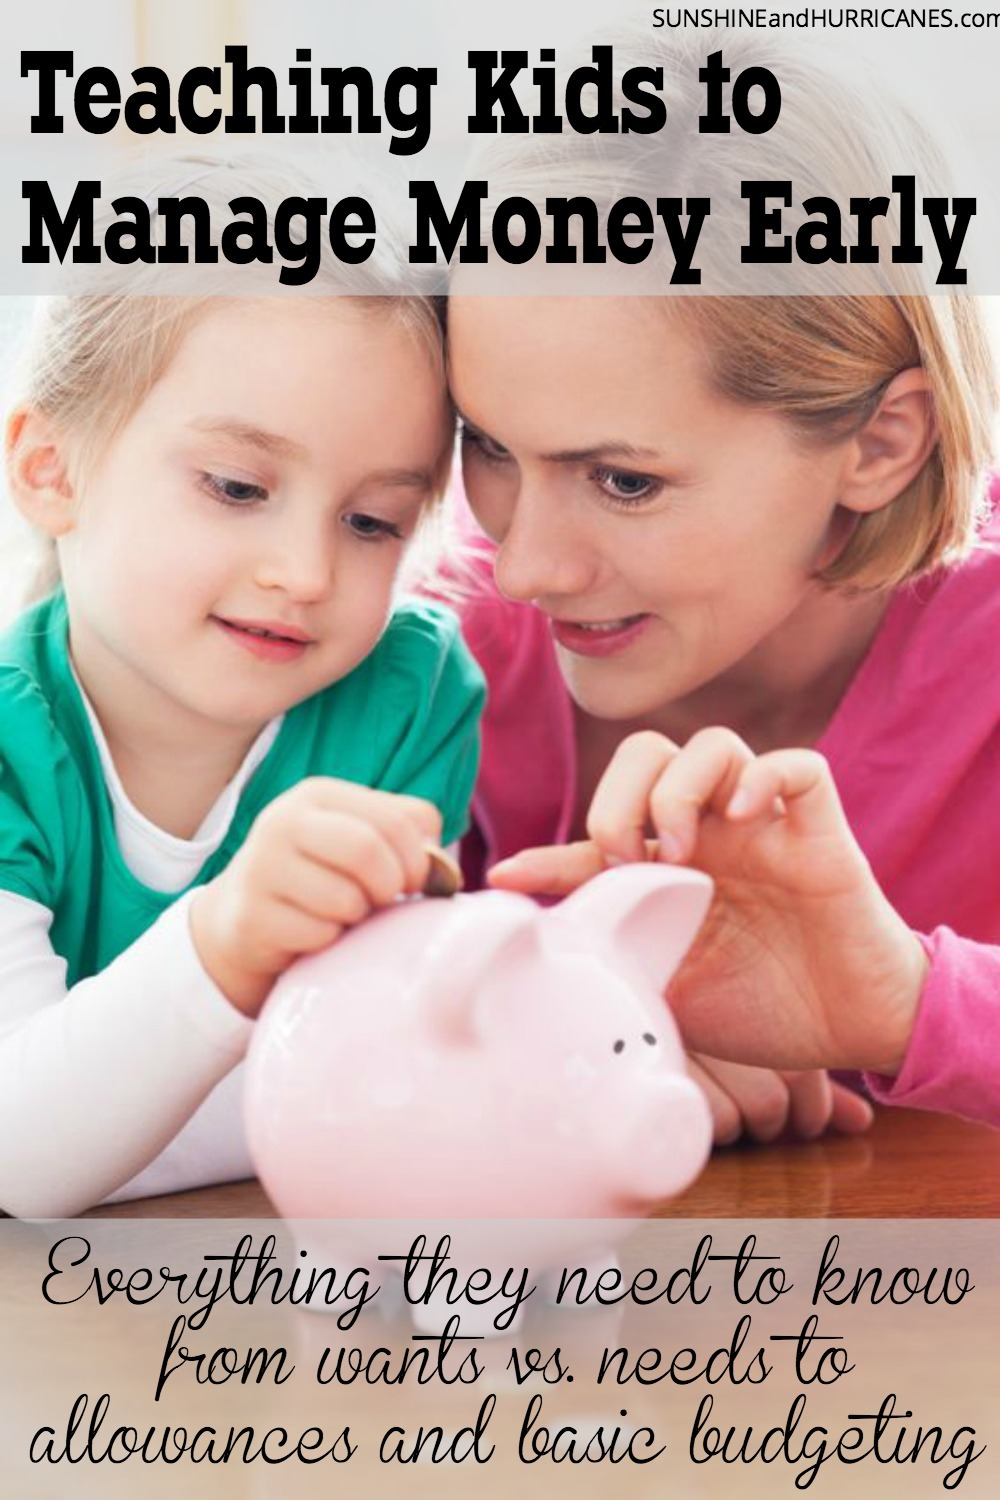 Did you know that if you help children develop healthy money habits early, they are more likely to carry them throughout life? There are many ways to help our children understand the value of a dollar using allowances, games and other basic skills practice. Teaching Kids to Manage Money Early. SunshineandHurricanes.com